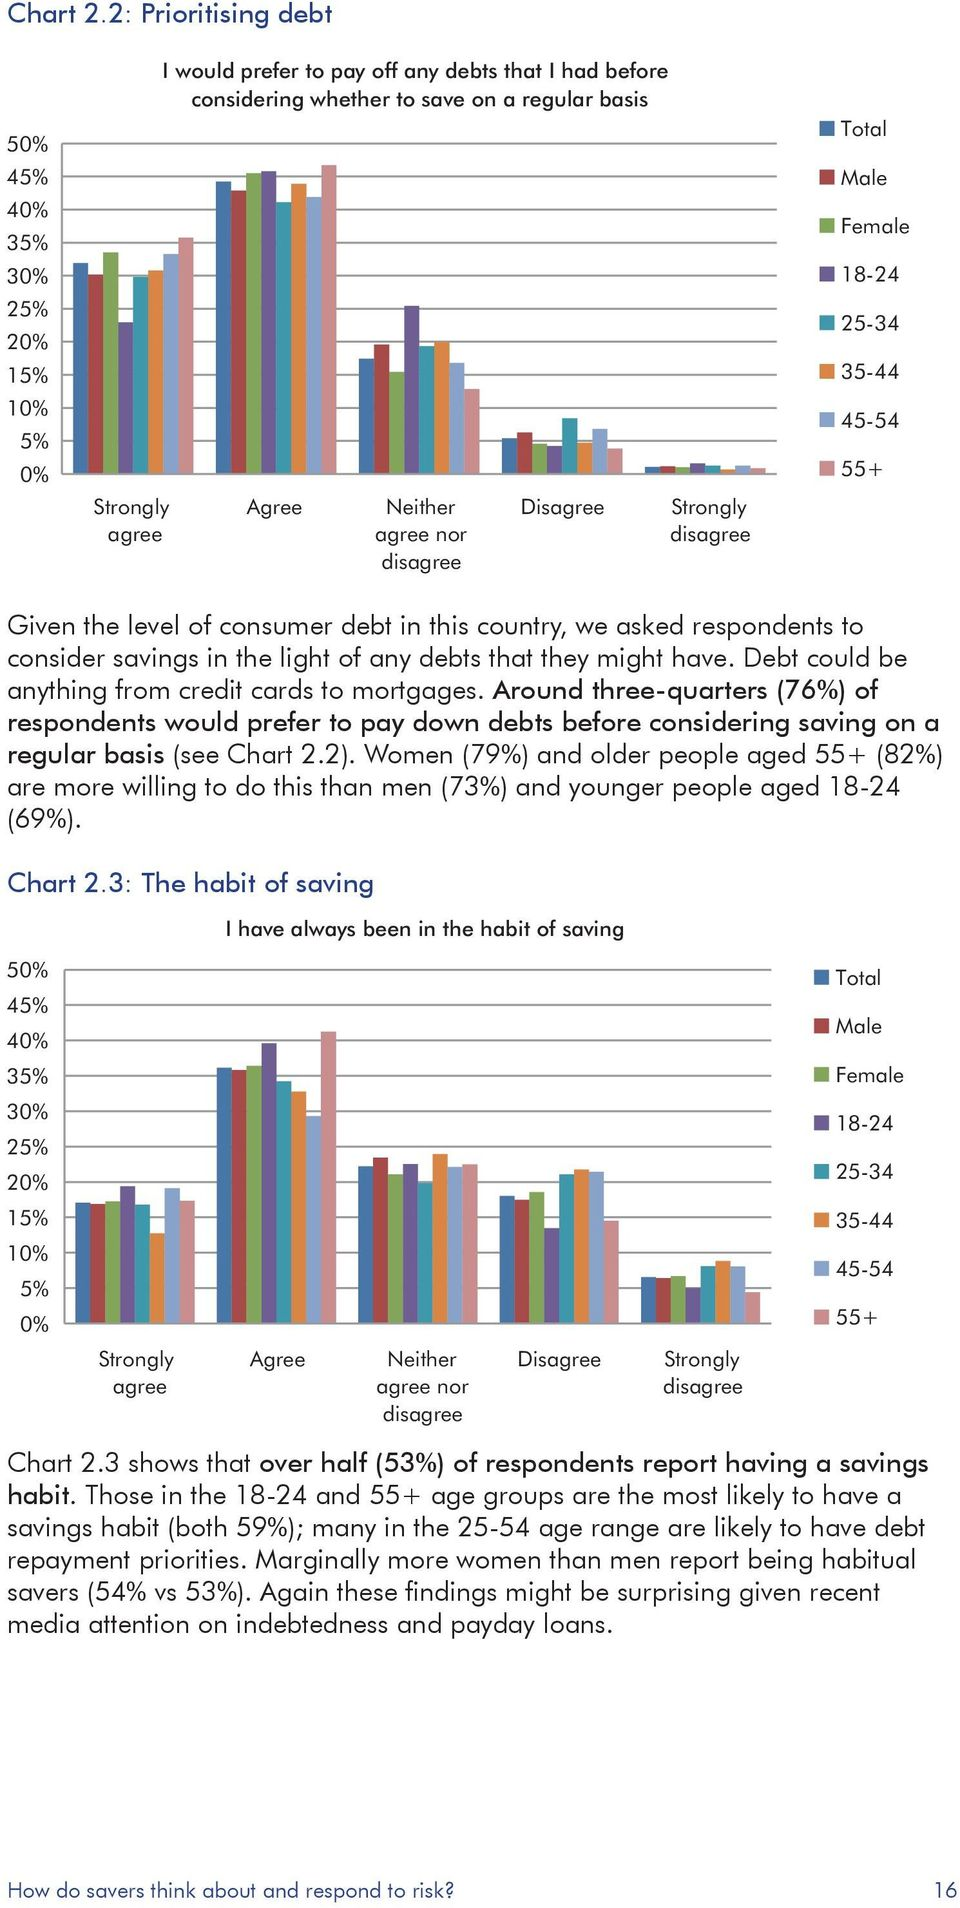 Strongly disagree Total Male Female 18-24 25-34 35-44 45-54 55+ Given the level of consumer debt in this country, we asked respondents to consider savings in the light of any debts that they might